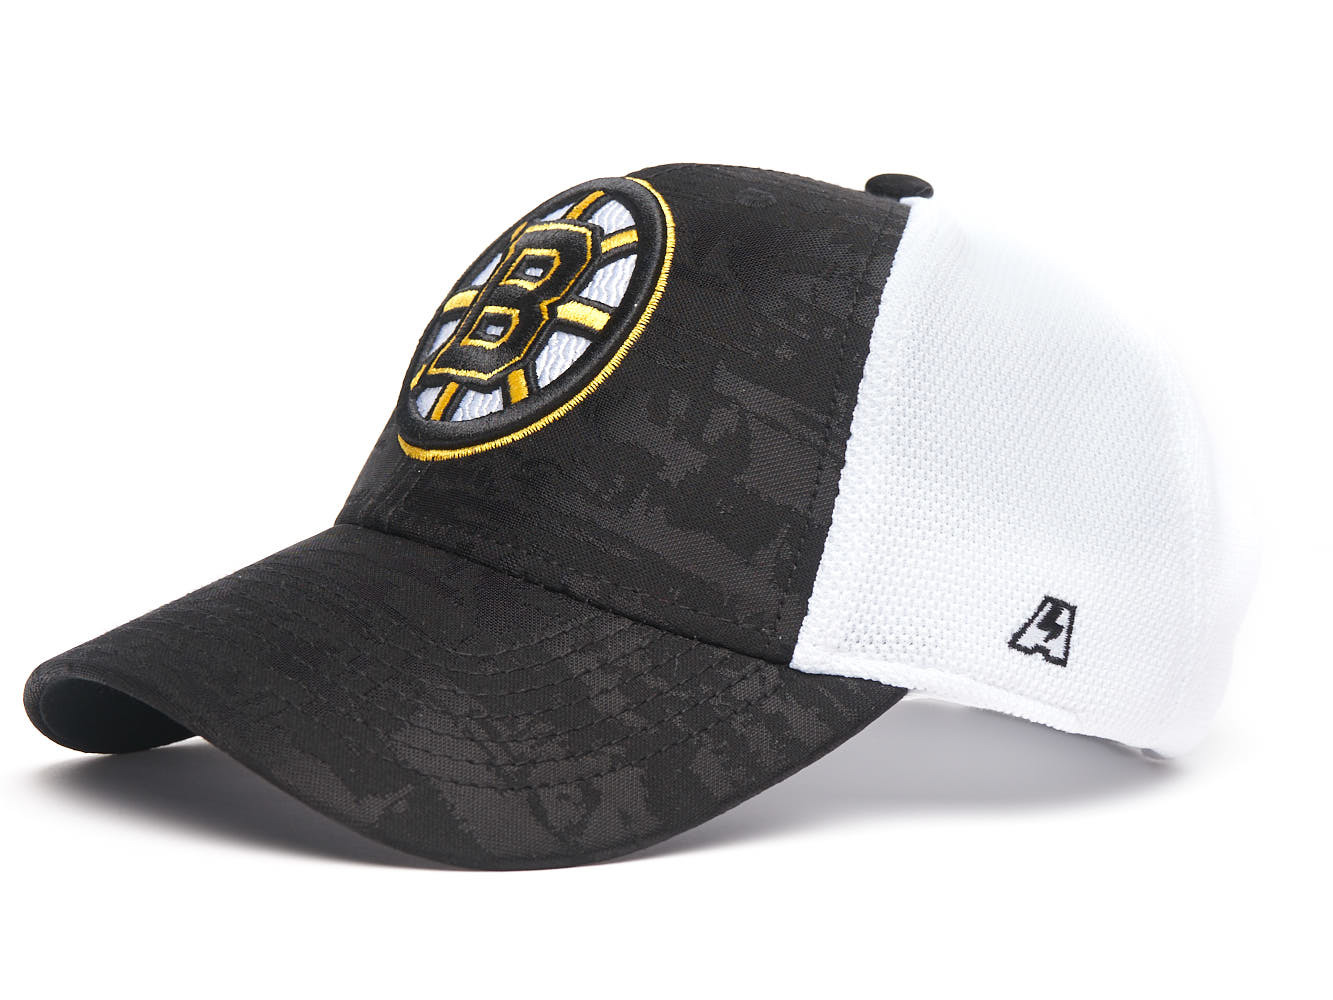 Бейсболка NHL Boston Bruins (размер XL)